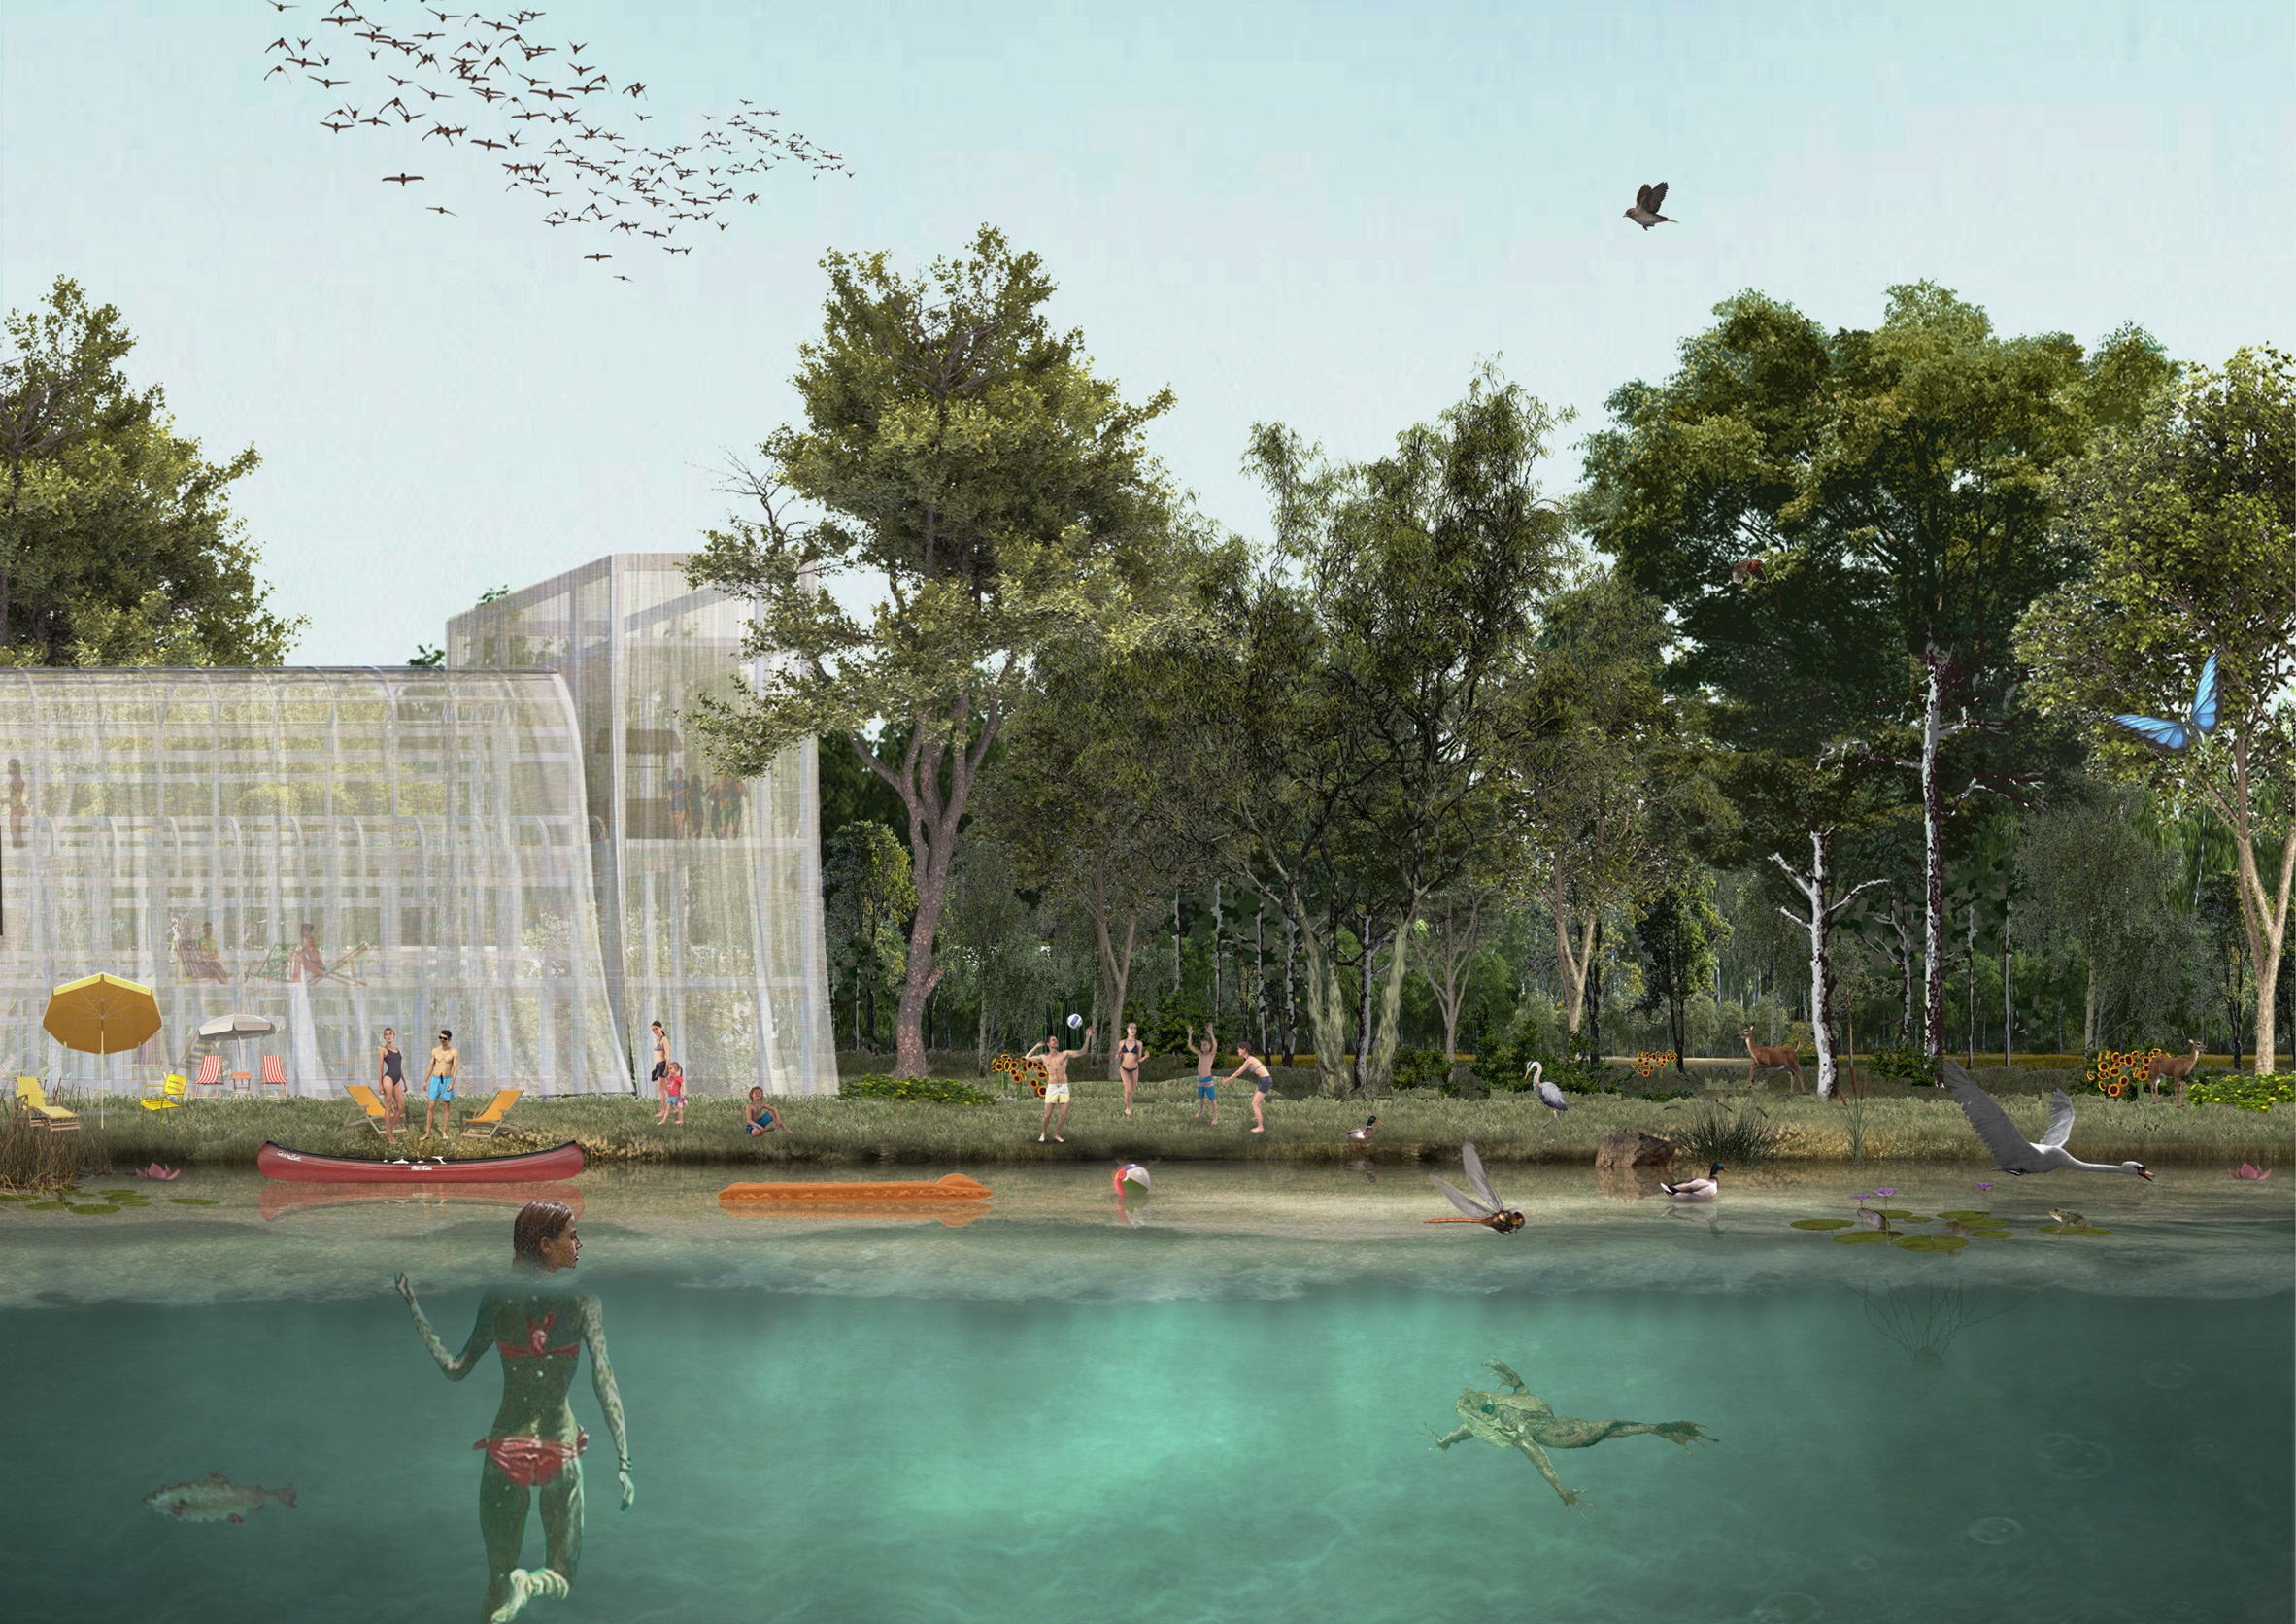 The Scalo San Cristoforo goods yard in the Agenti Climatici masterplan for Milan by OMA and Laboratorio Permanente